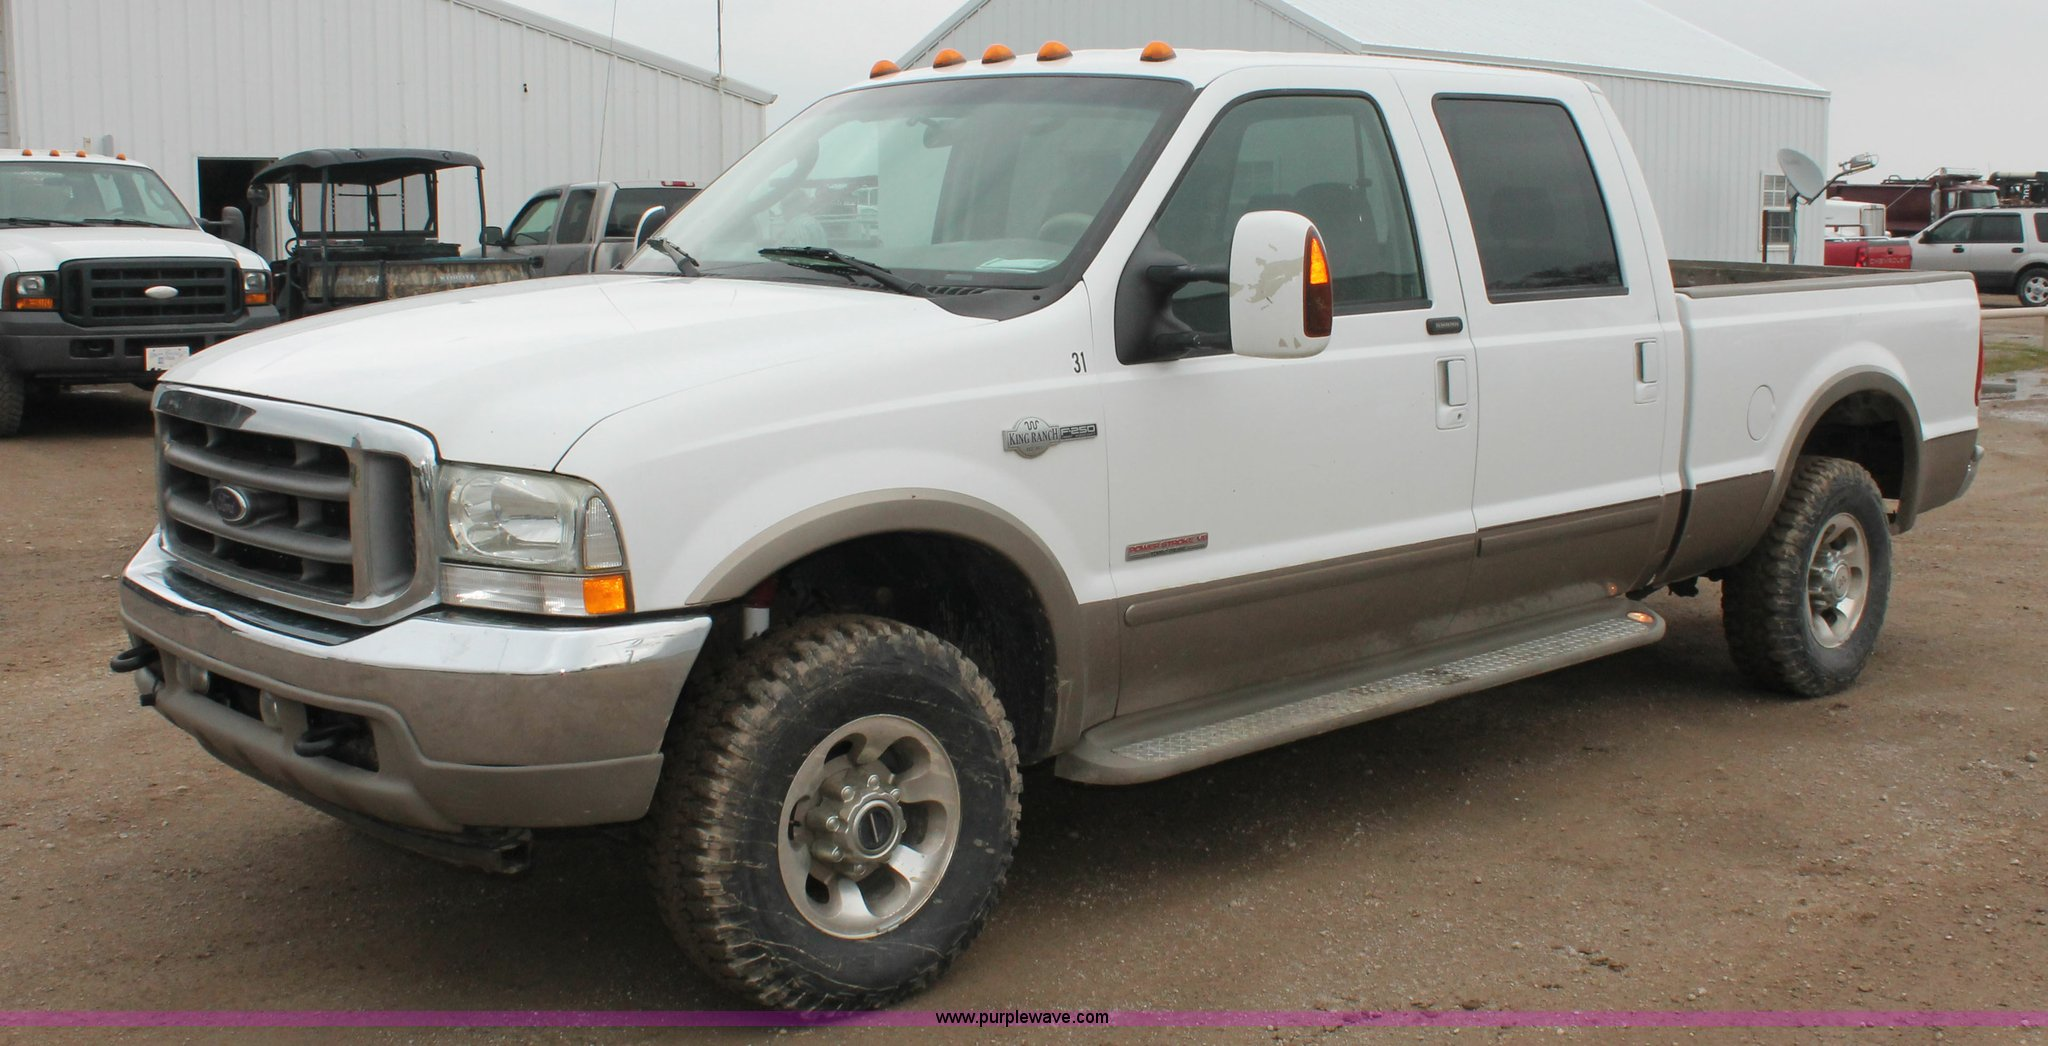 2004 Ford F250 King Ranch Crew Cab pickup truck